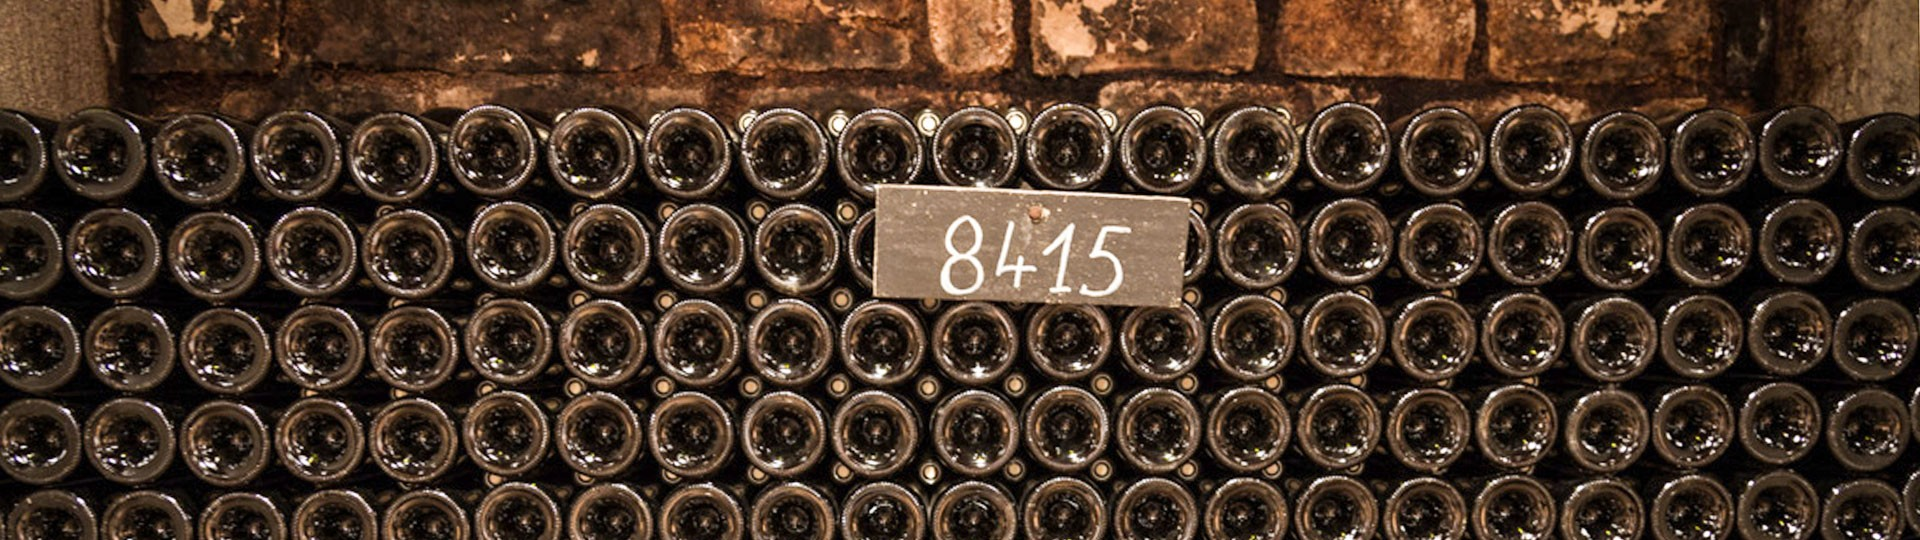 A picture of a wine cellar housing multiple rows of wine bottles